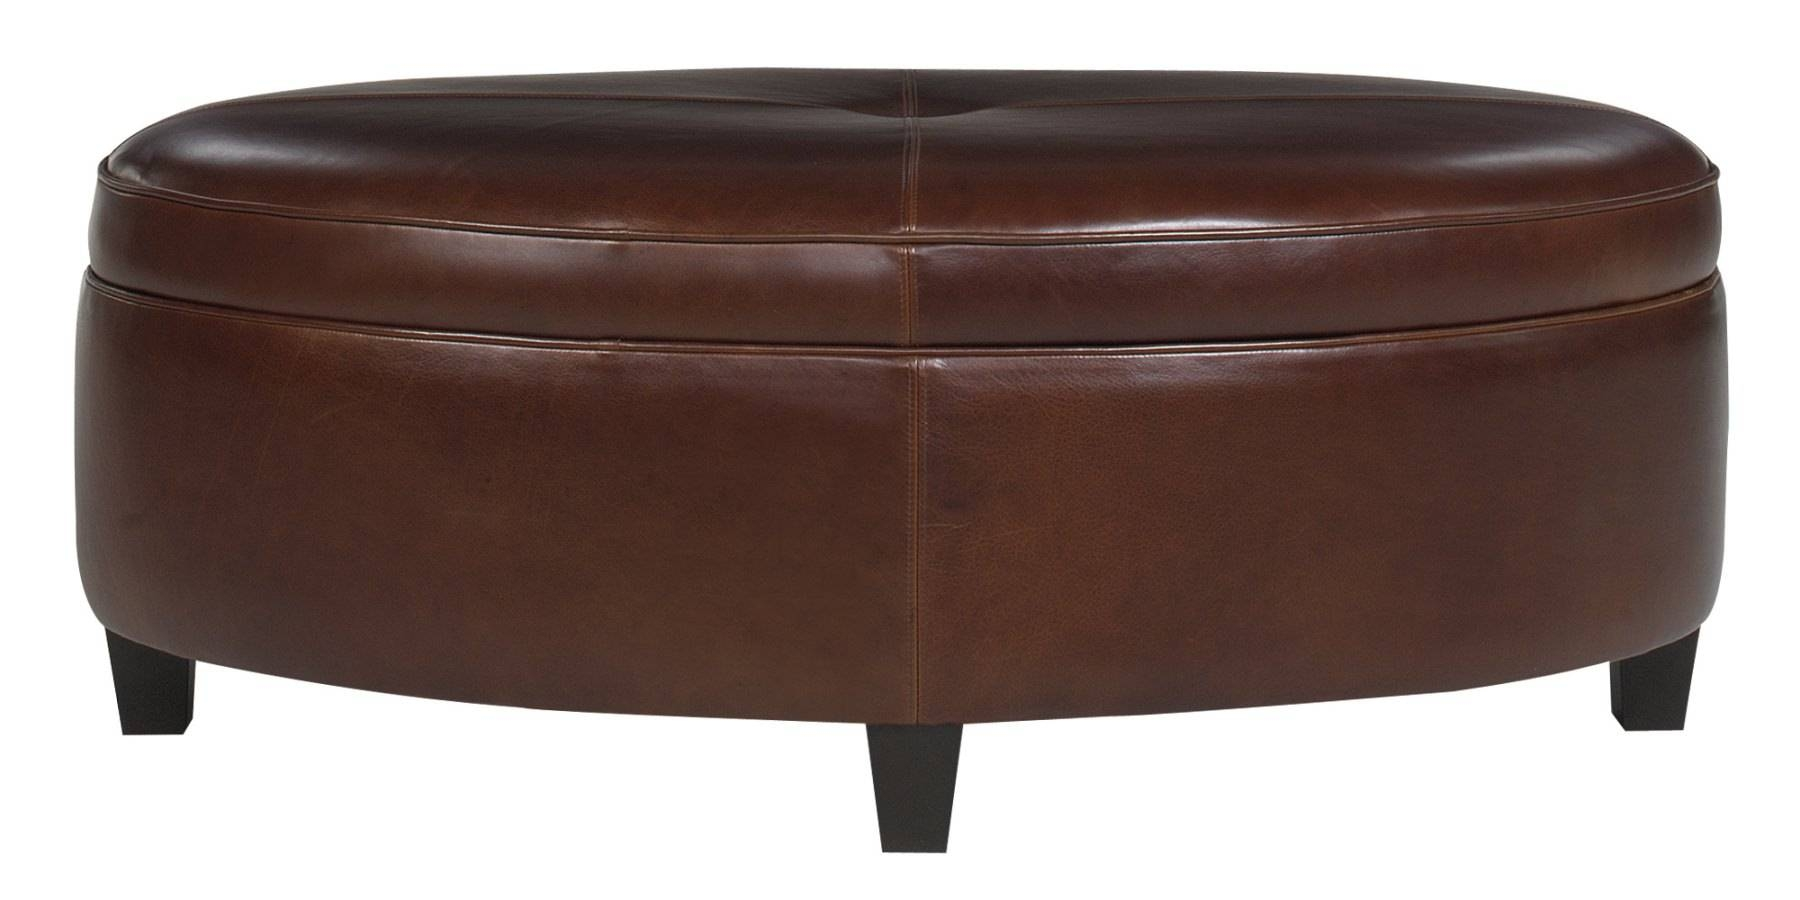 Furniture: Nice Oversized Ottoman For Living Room Furniture Idea Pertaining To Round Upholstered Coffee Tables (View 13 of 30)